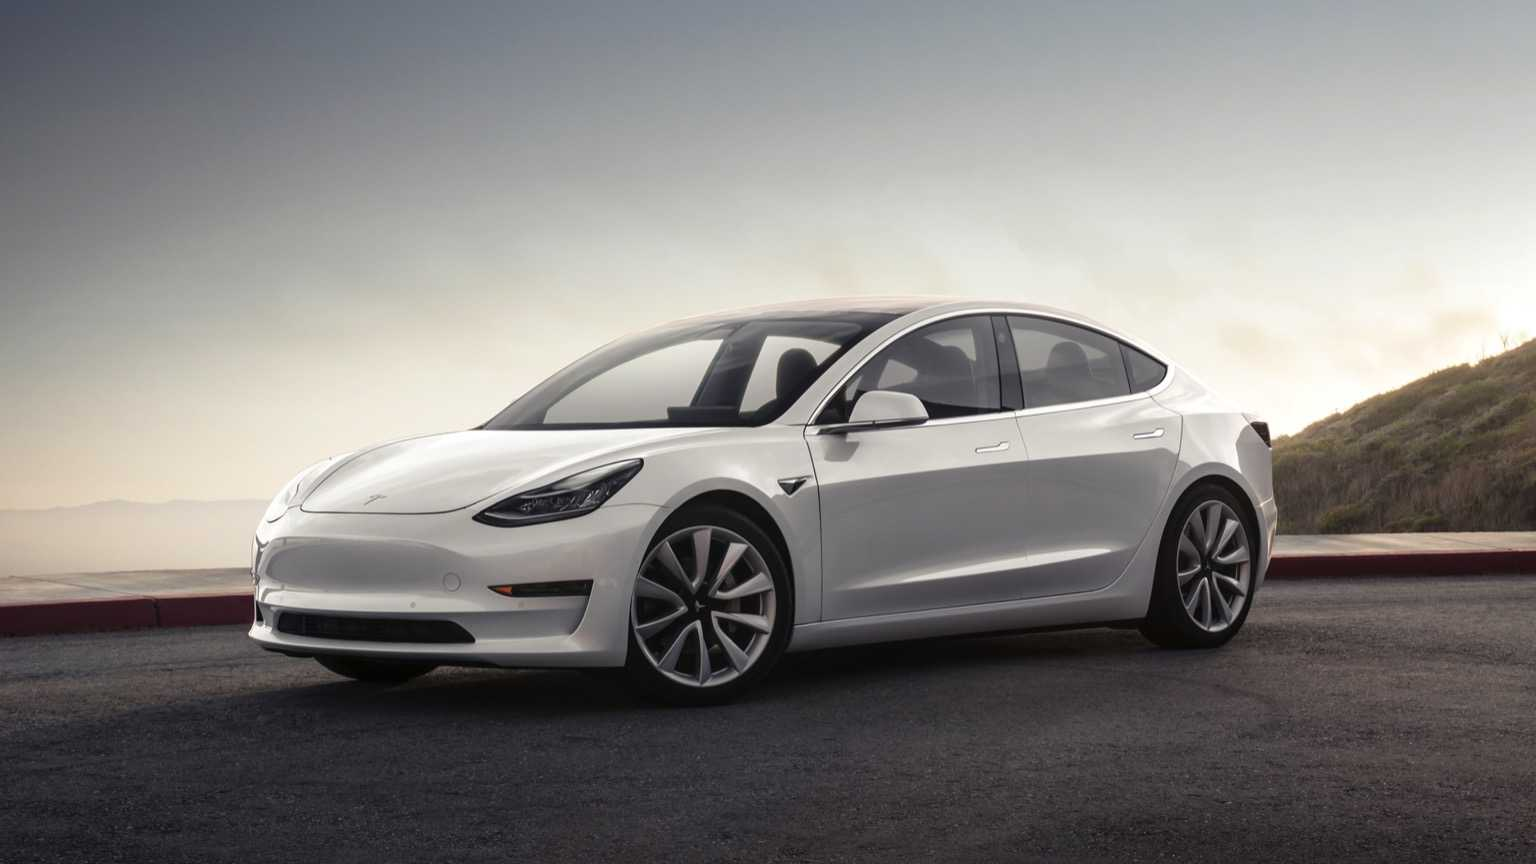 Tesla 2021 Model 3 Hatchback is in the Making to Beat Volkswagen ID 3